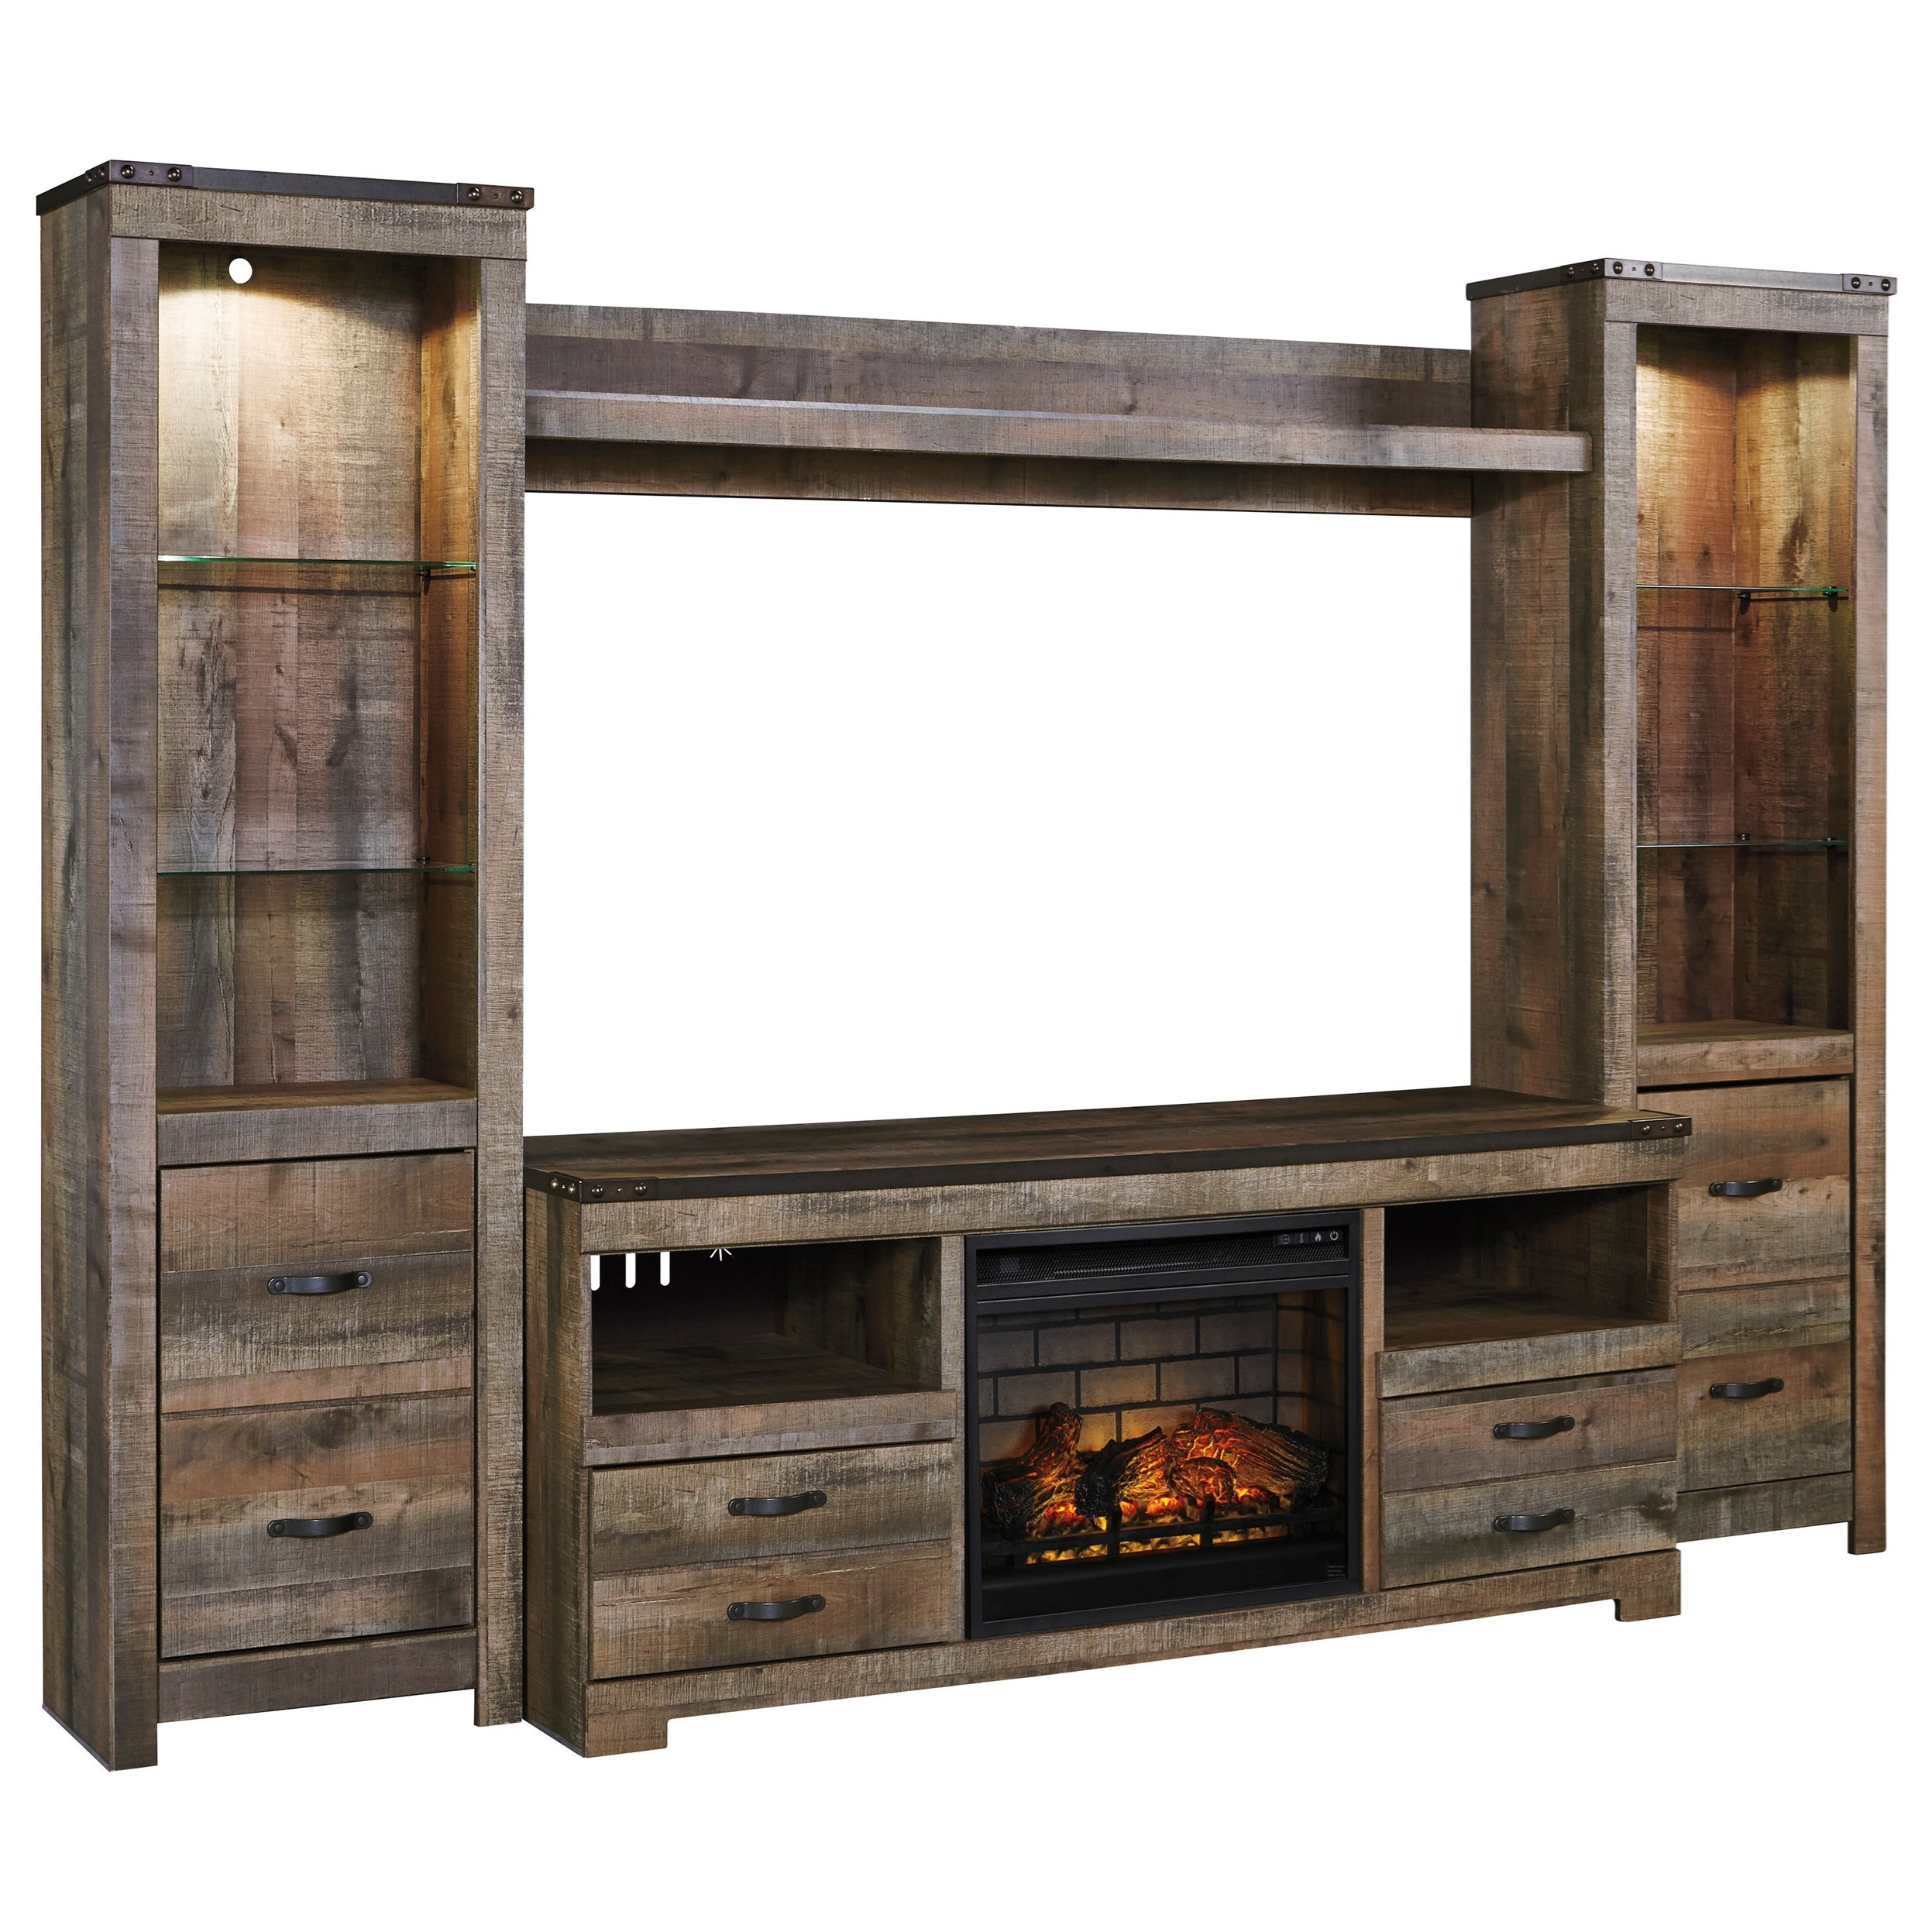 Trinell Large TV Stand w/ Fireplace, Piers, & Bridge by Signature Design by Ashley at Value City Furniture